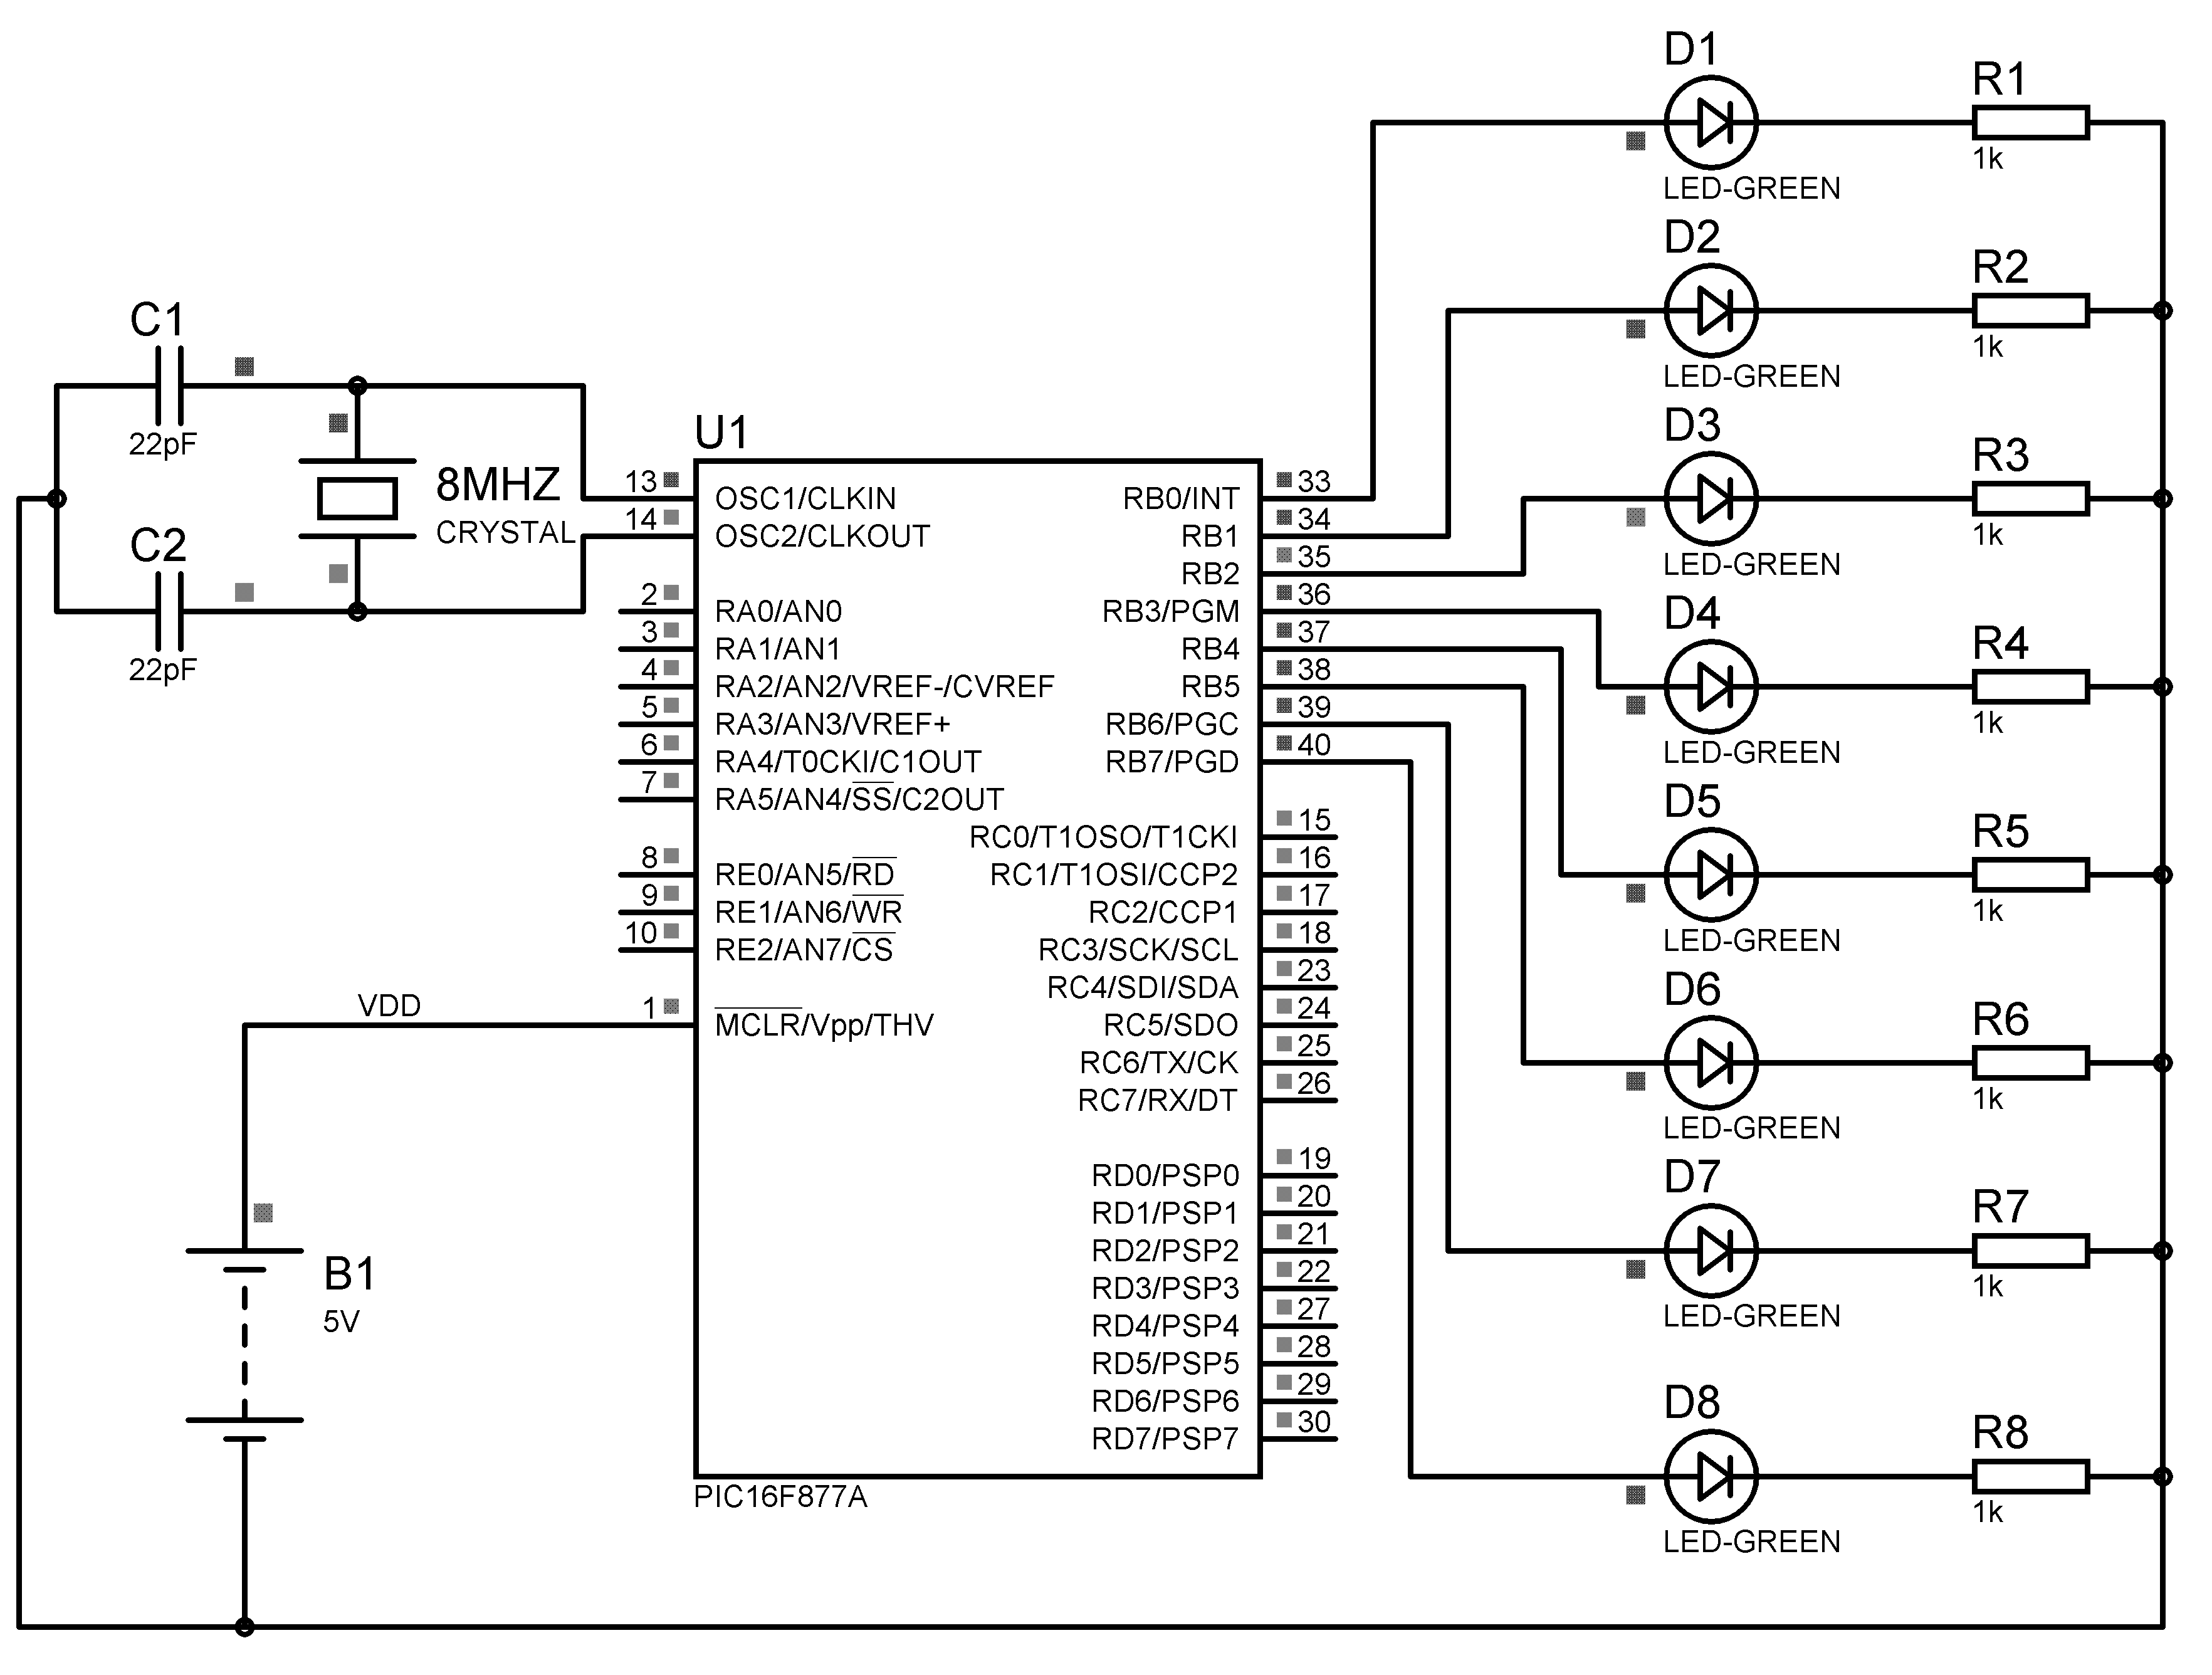 Led Chaser Using Pic Microcontroller Mikroc Note 3 Circuit Diagram